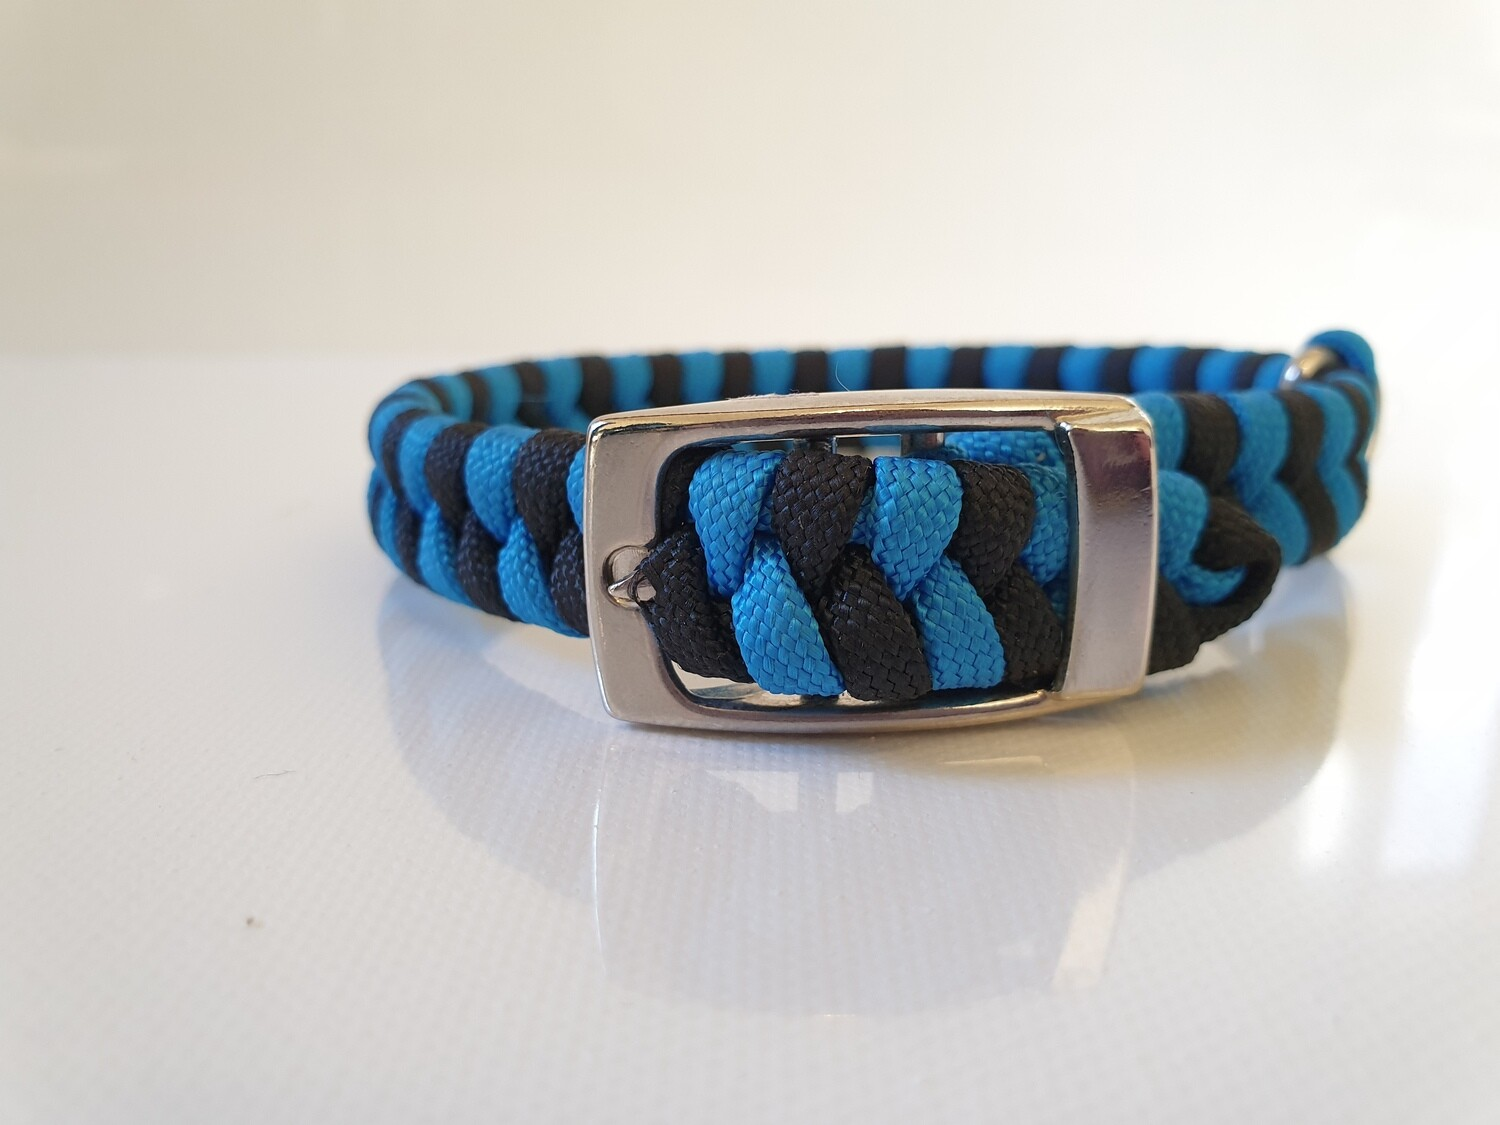 Flat Braid Extra Small Blue/Black Dog Collar